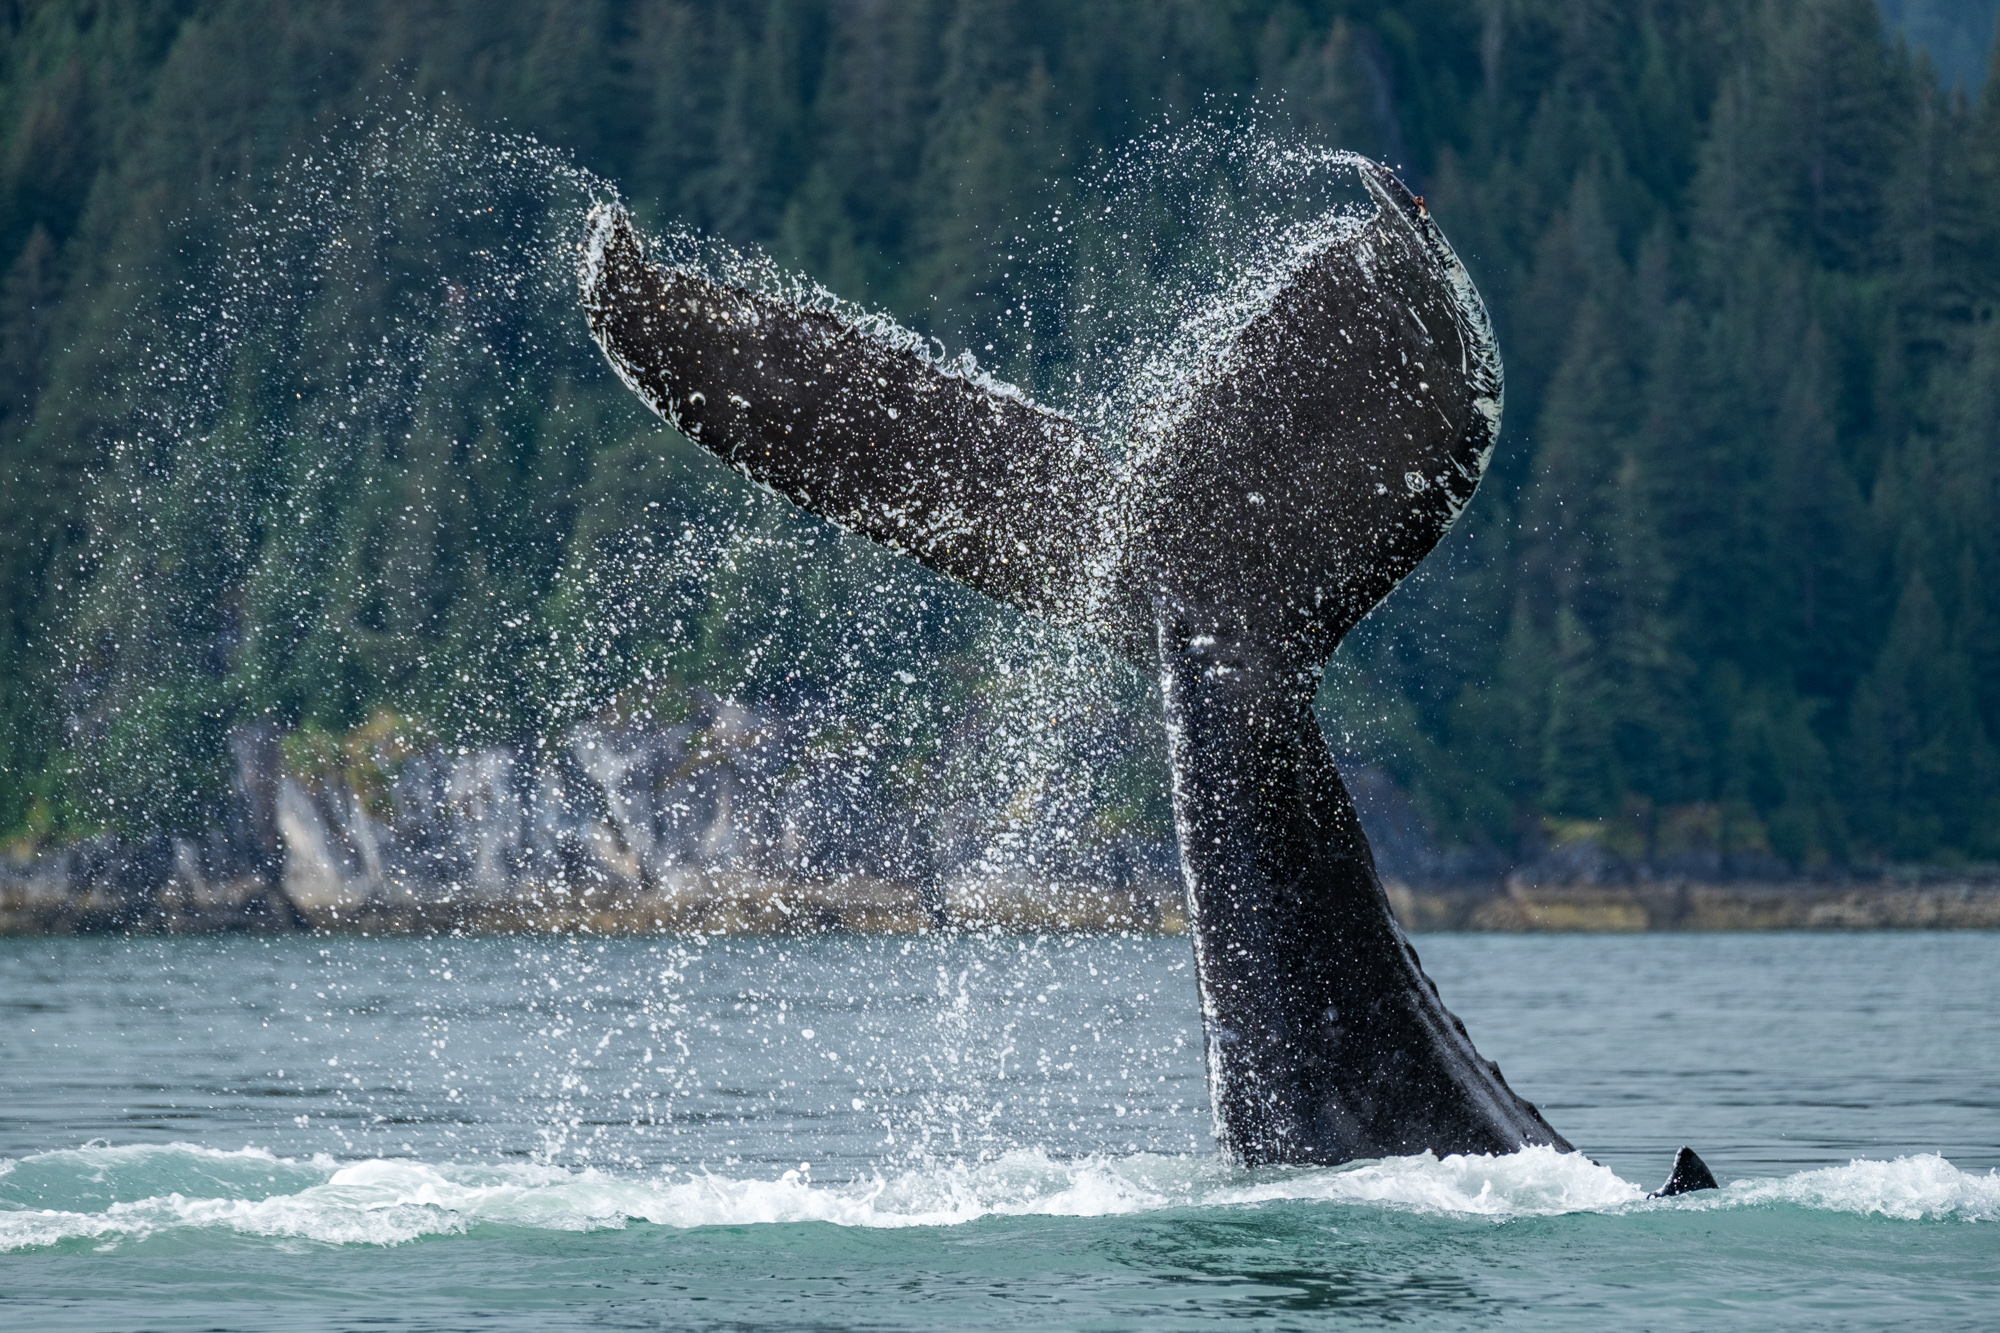 You can't imagine the sound of a giant whale slapping the water with its tale. It is a jaw-dropping experience.